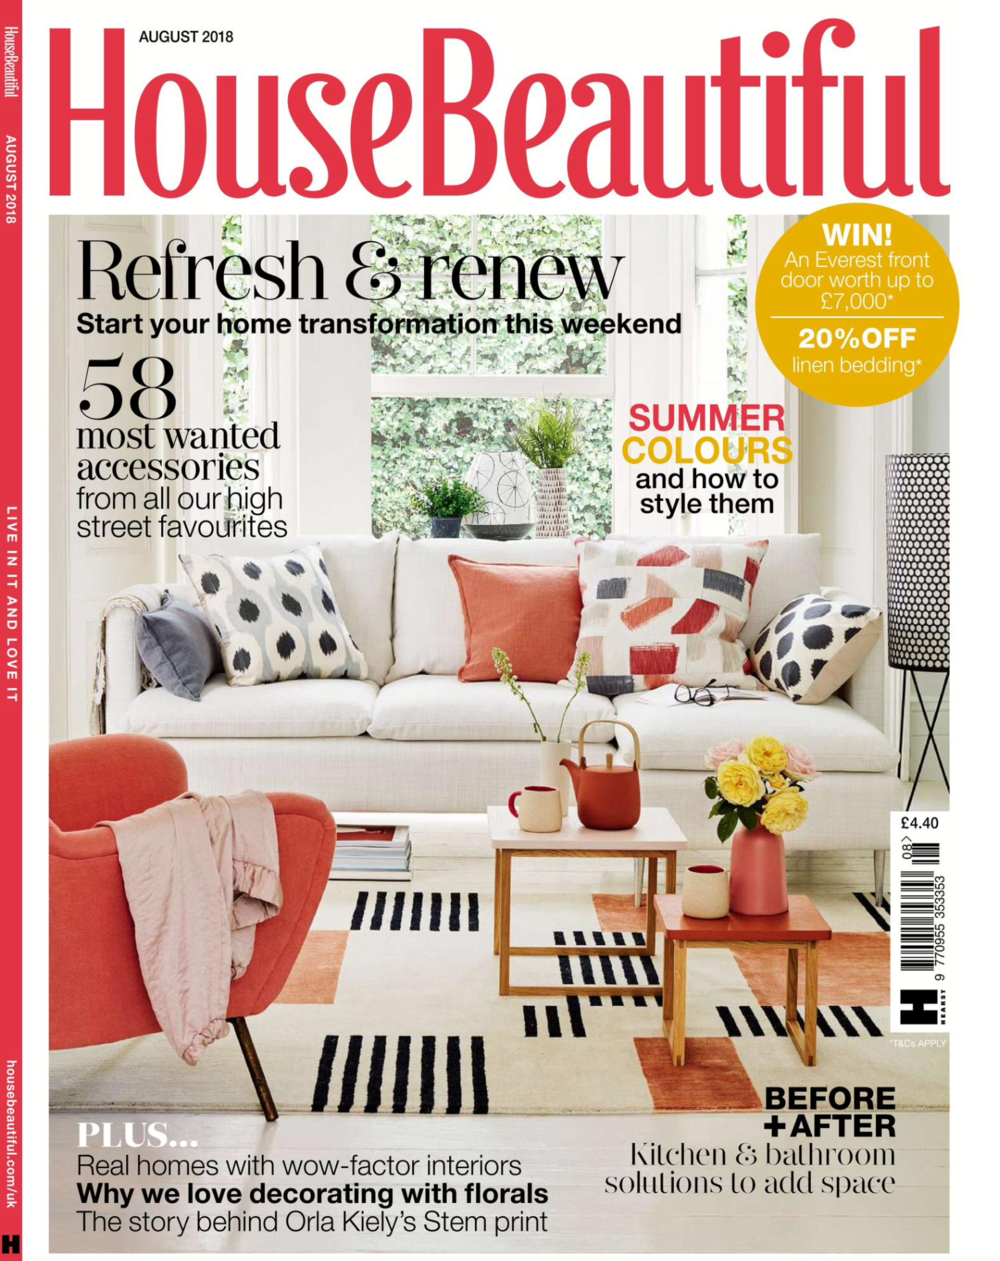 House Beautiful - August 2018